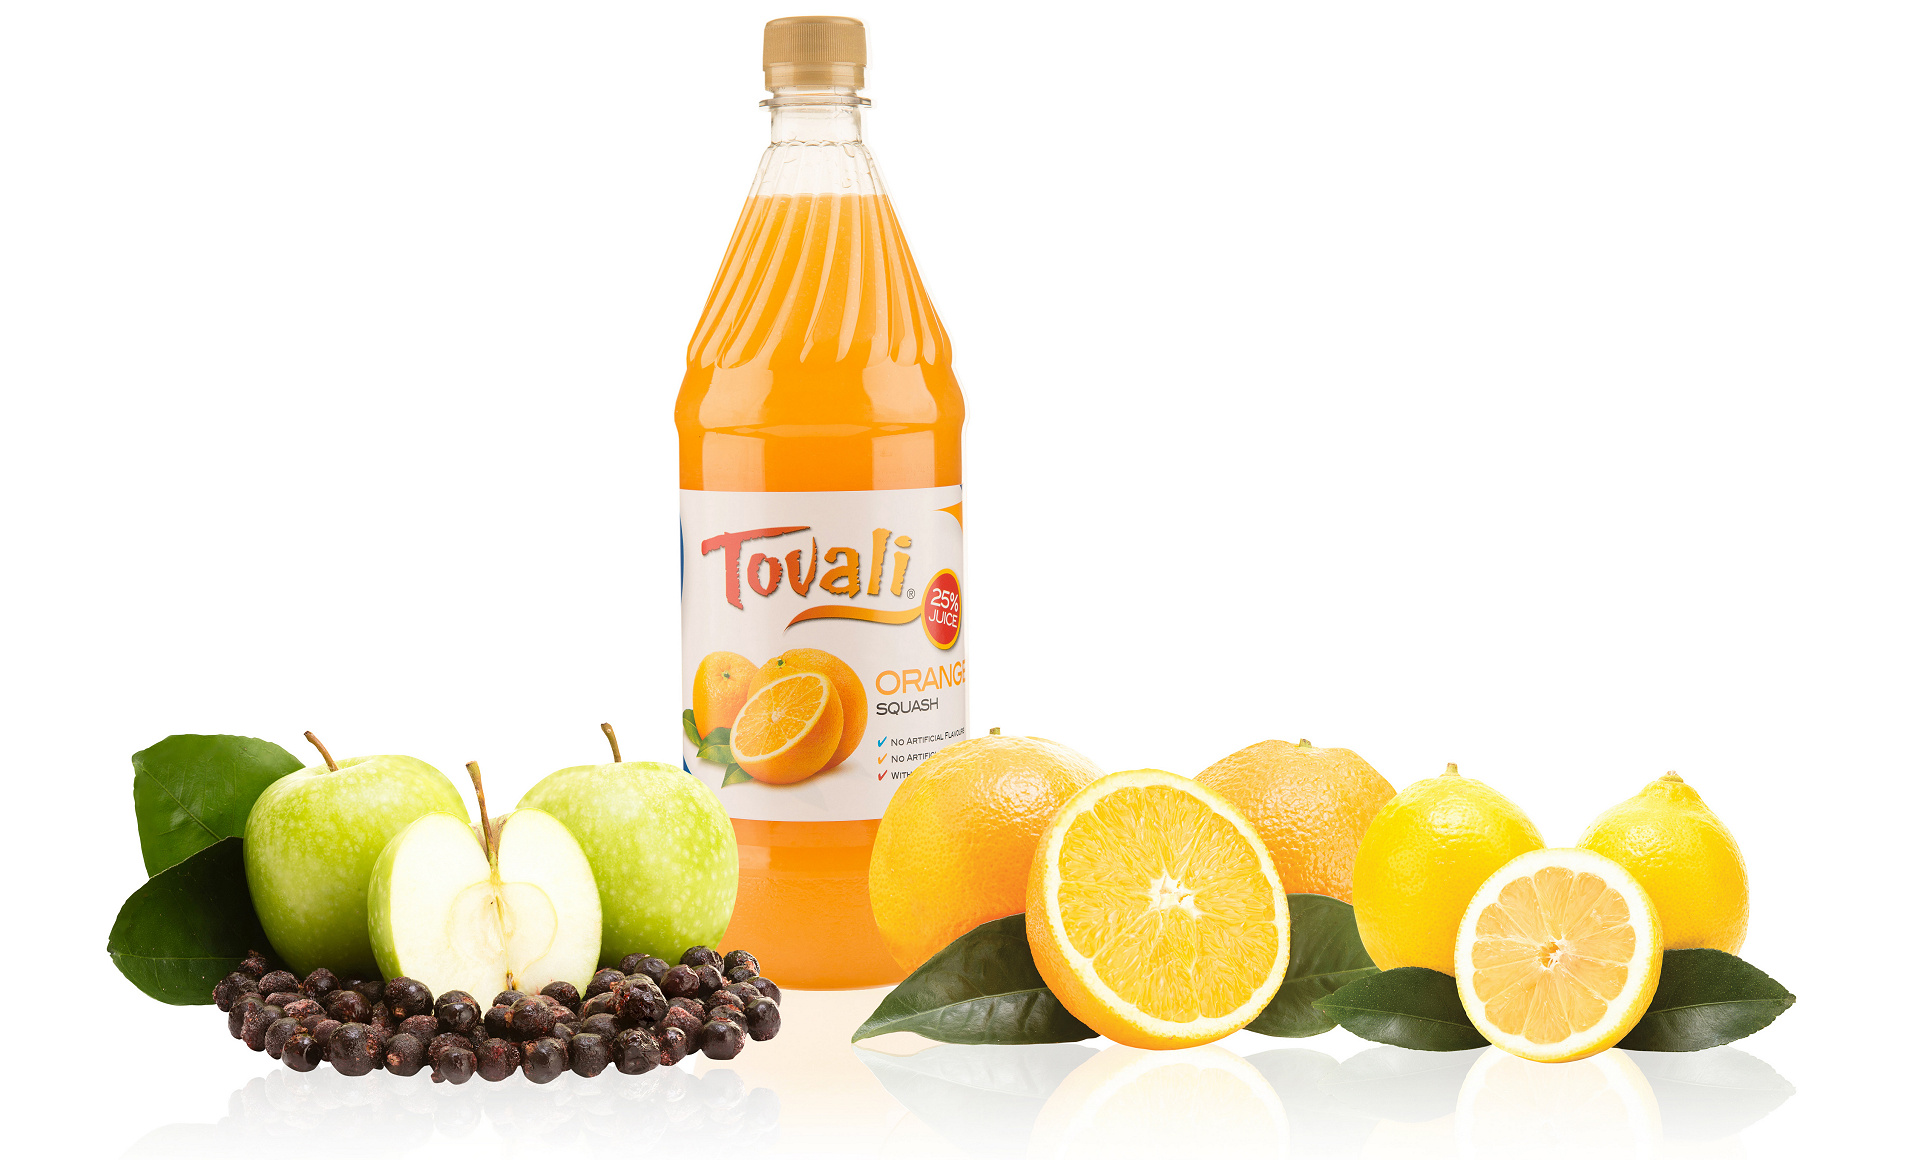 Tovali, Quality Fruit Drinks since 1937